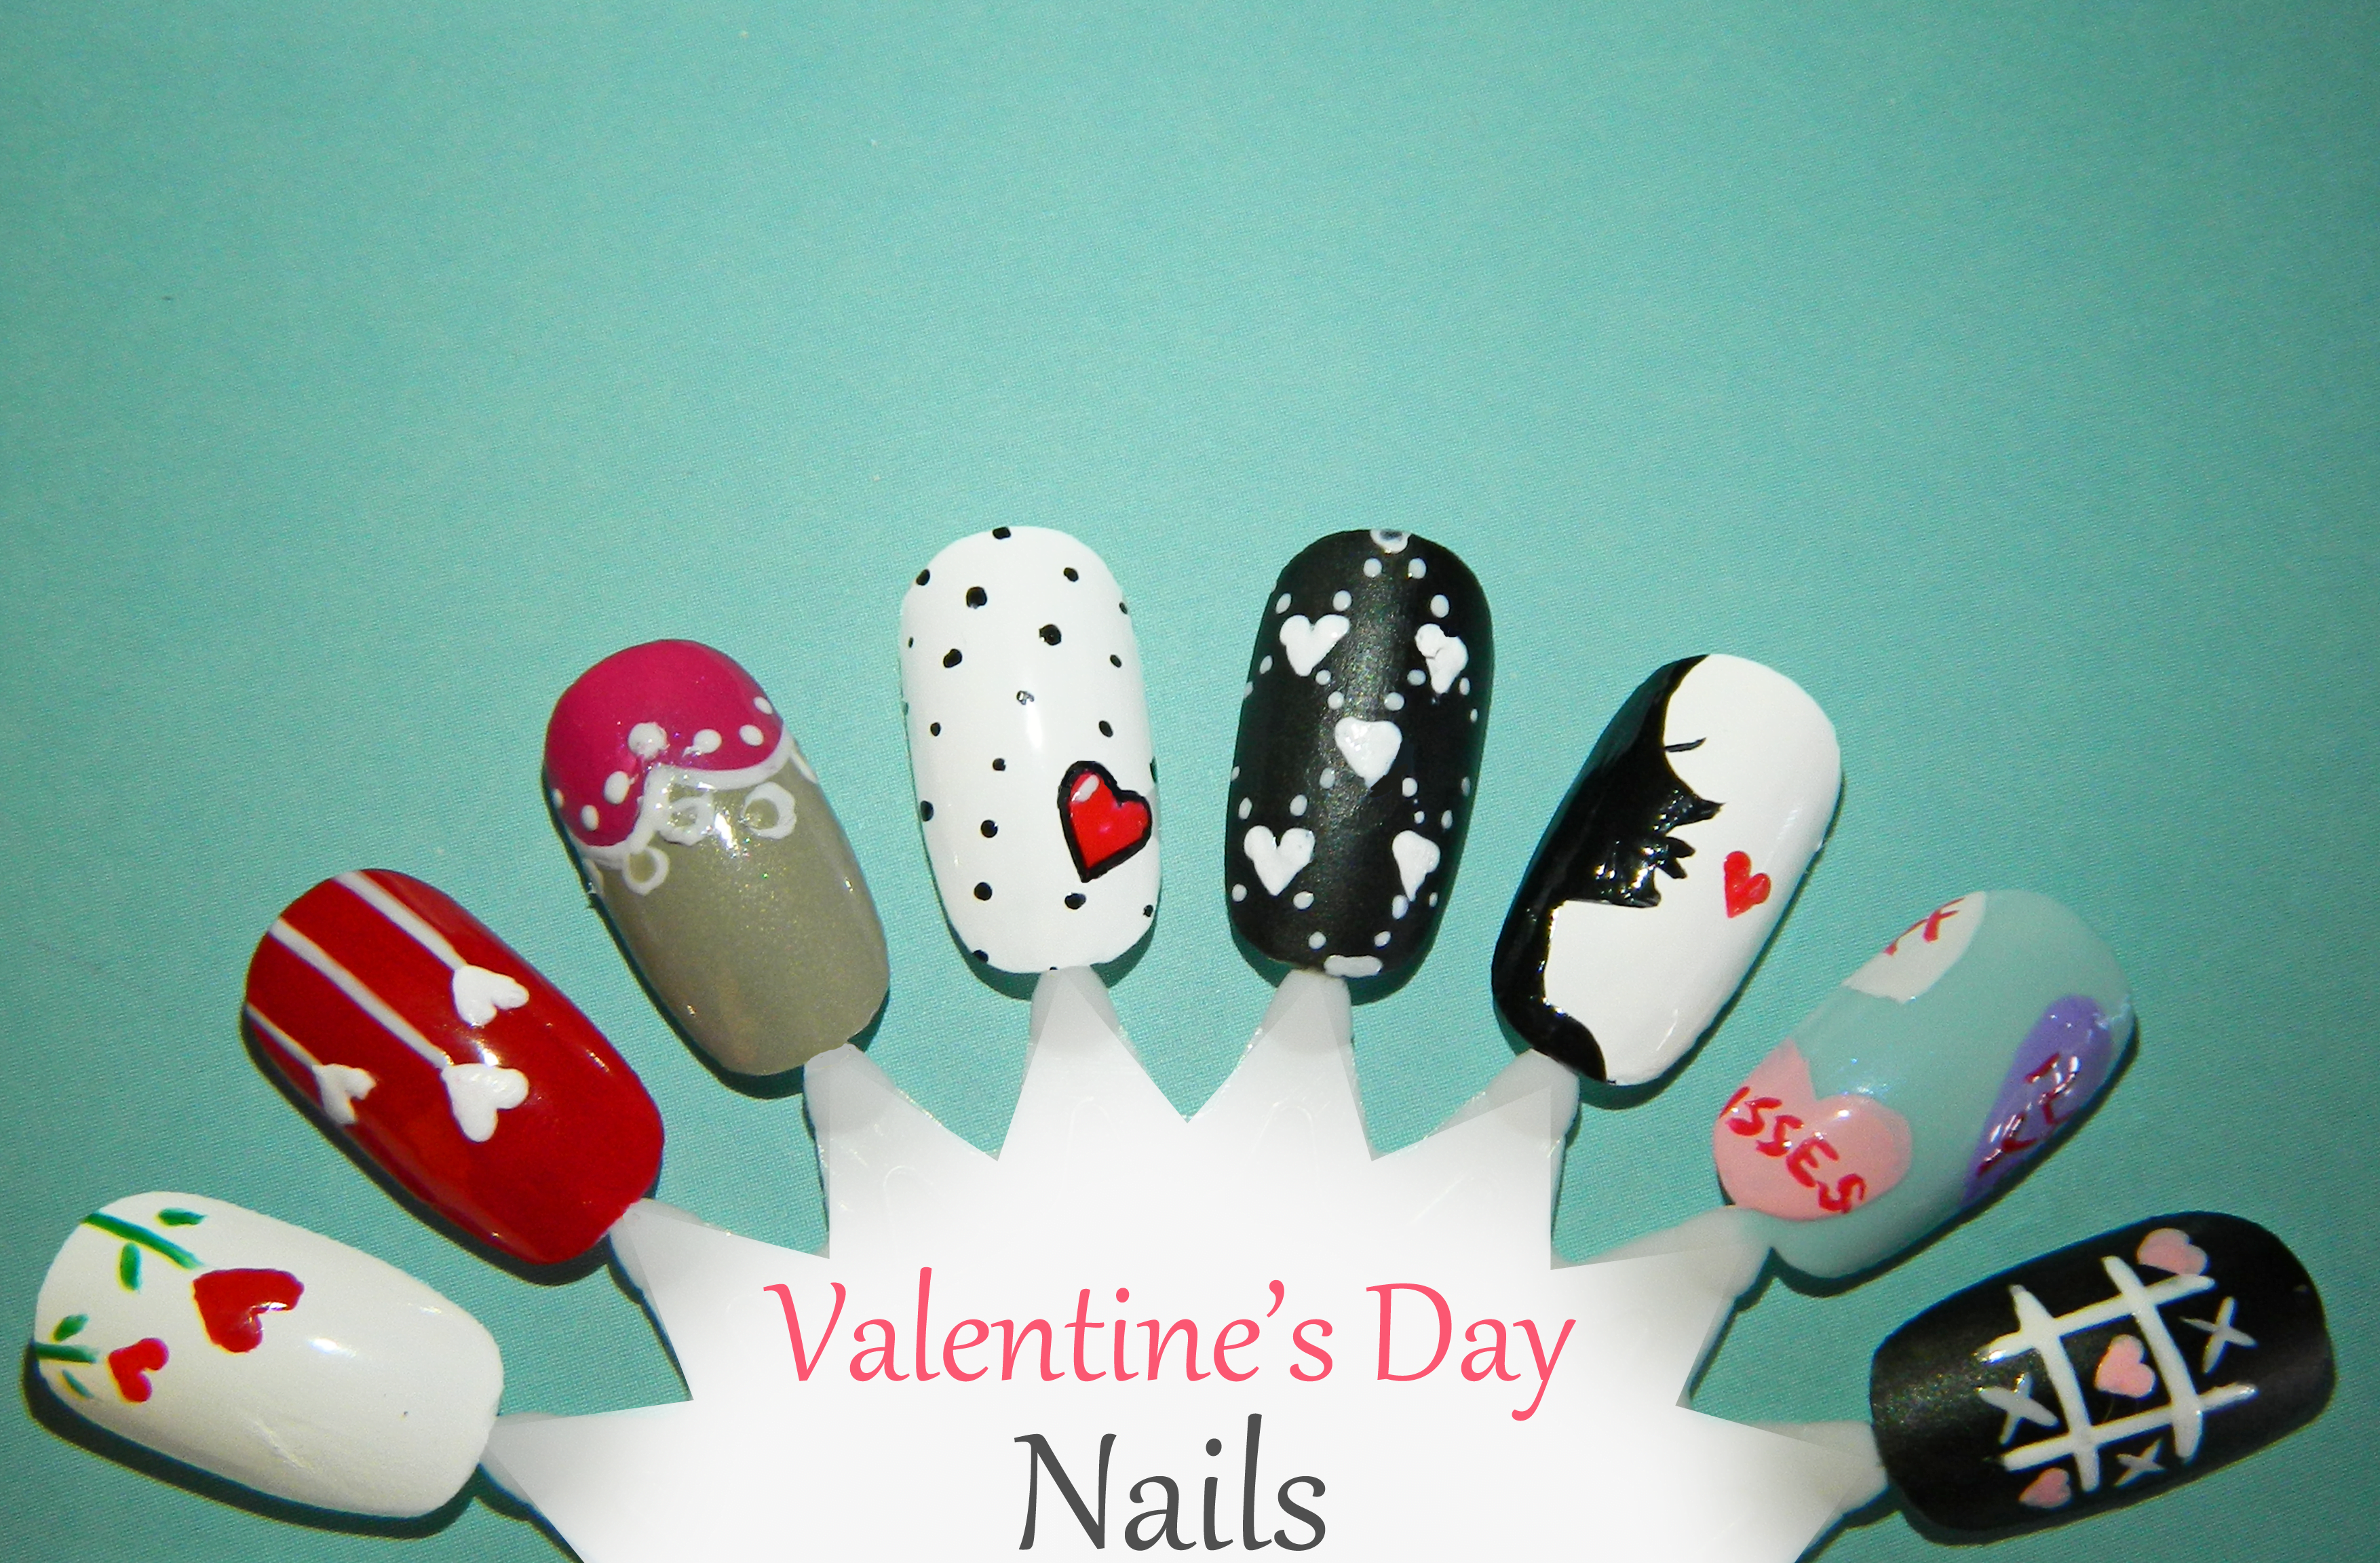 Those V-Day Nails